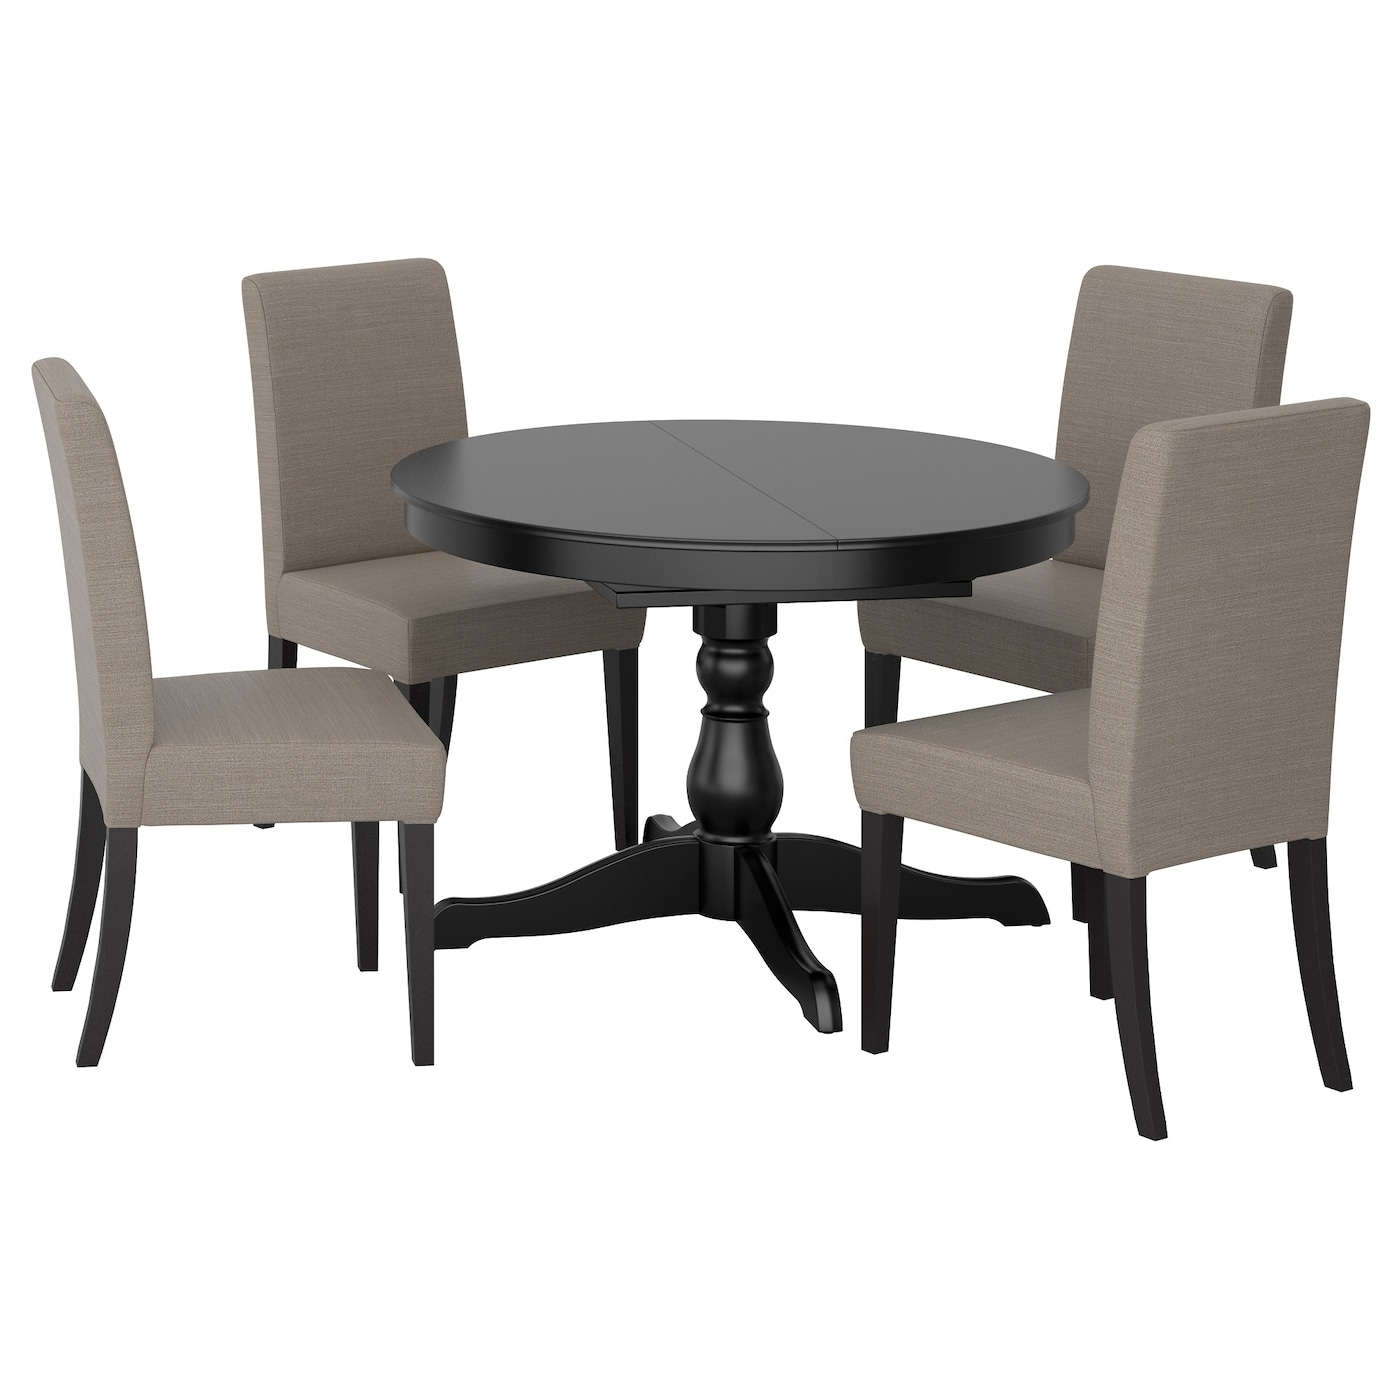 Ingatorp henriksdal table and 4 chairs black nolhaga grey for Table and chair set